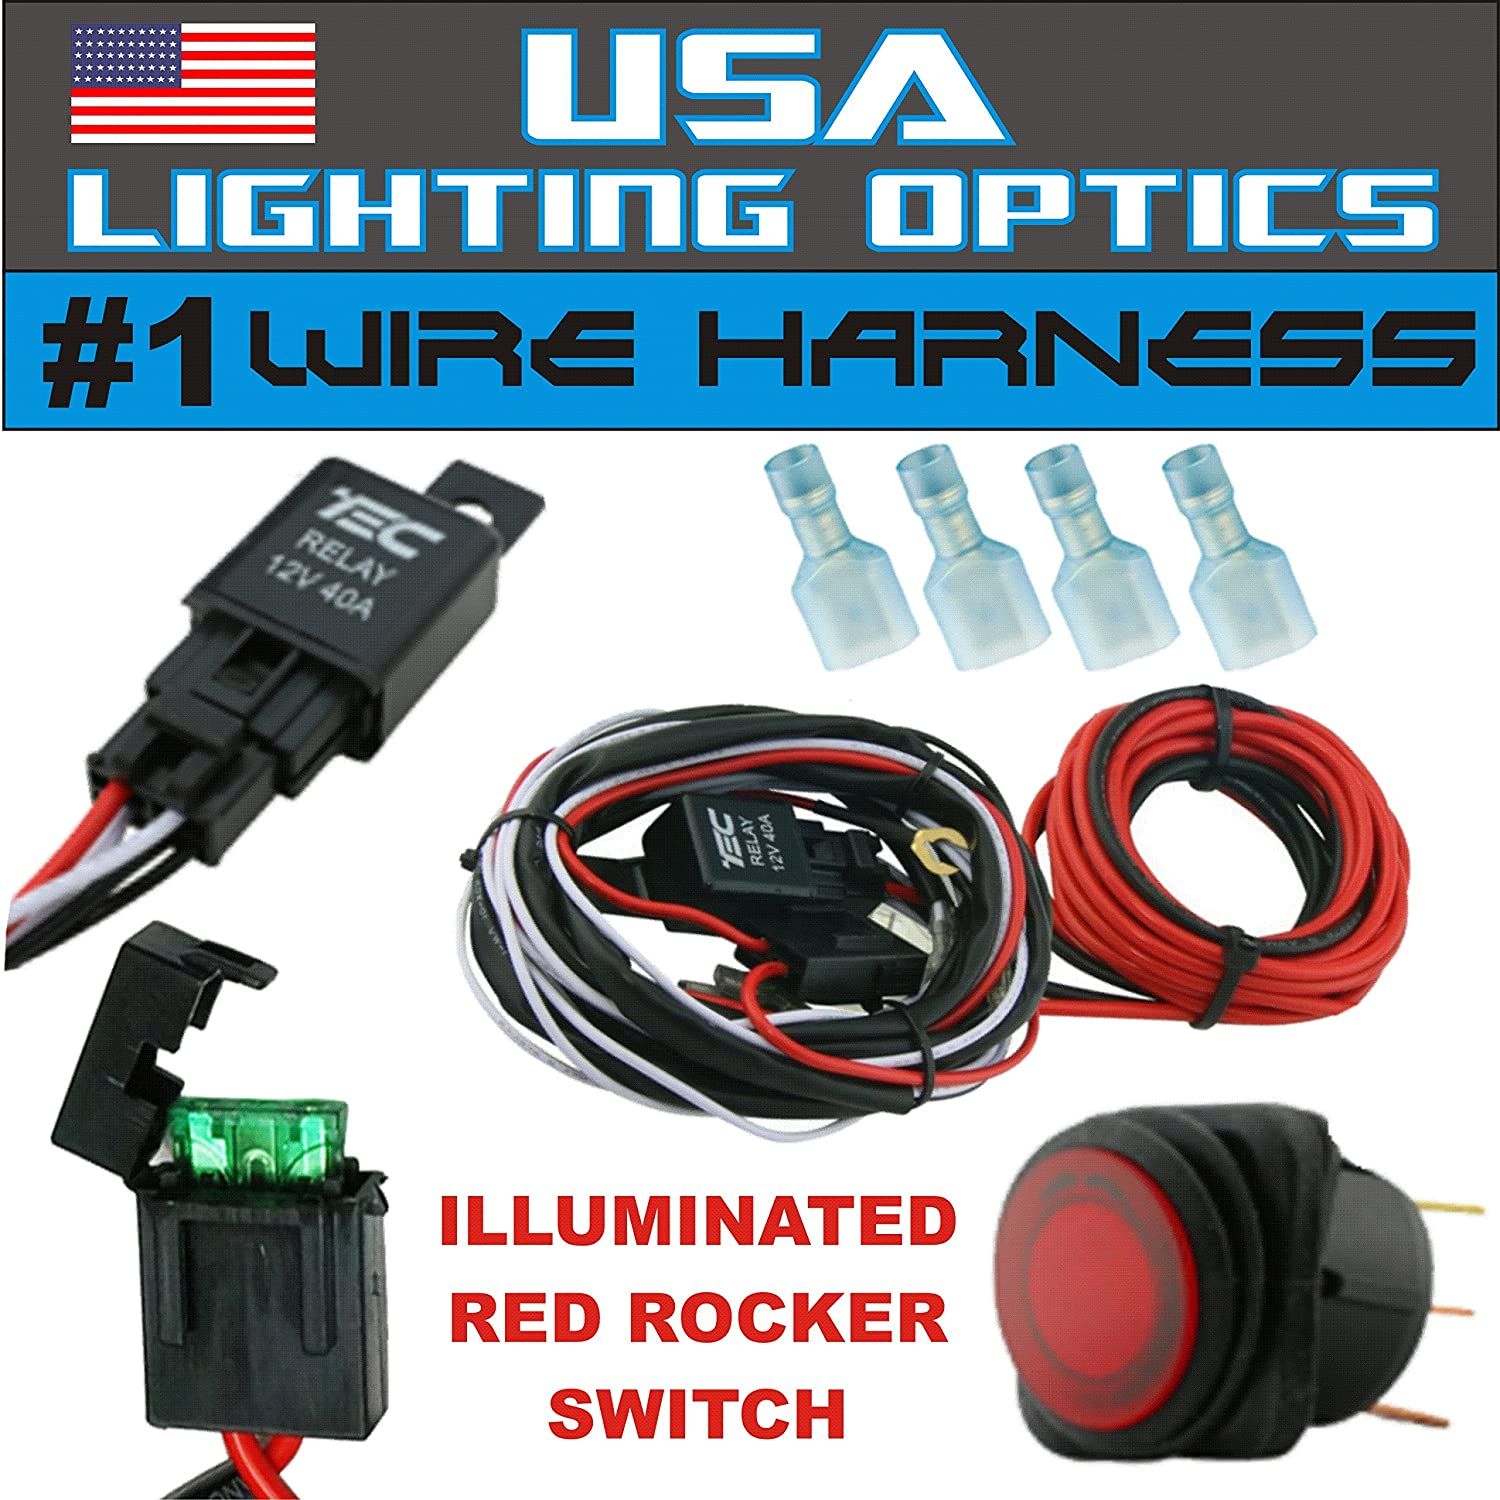 A1dMKlBH4WL._SL1500_ amazon com 1 40 amp universal wiring harness for off road led off road wiring harness at readyjetset.co